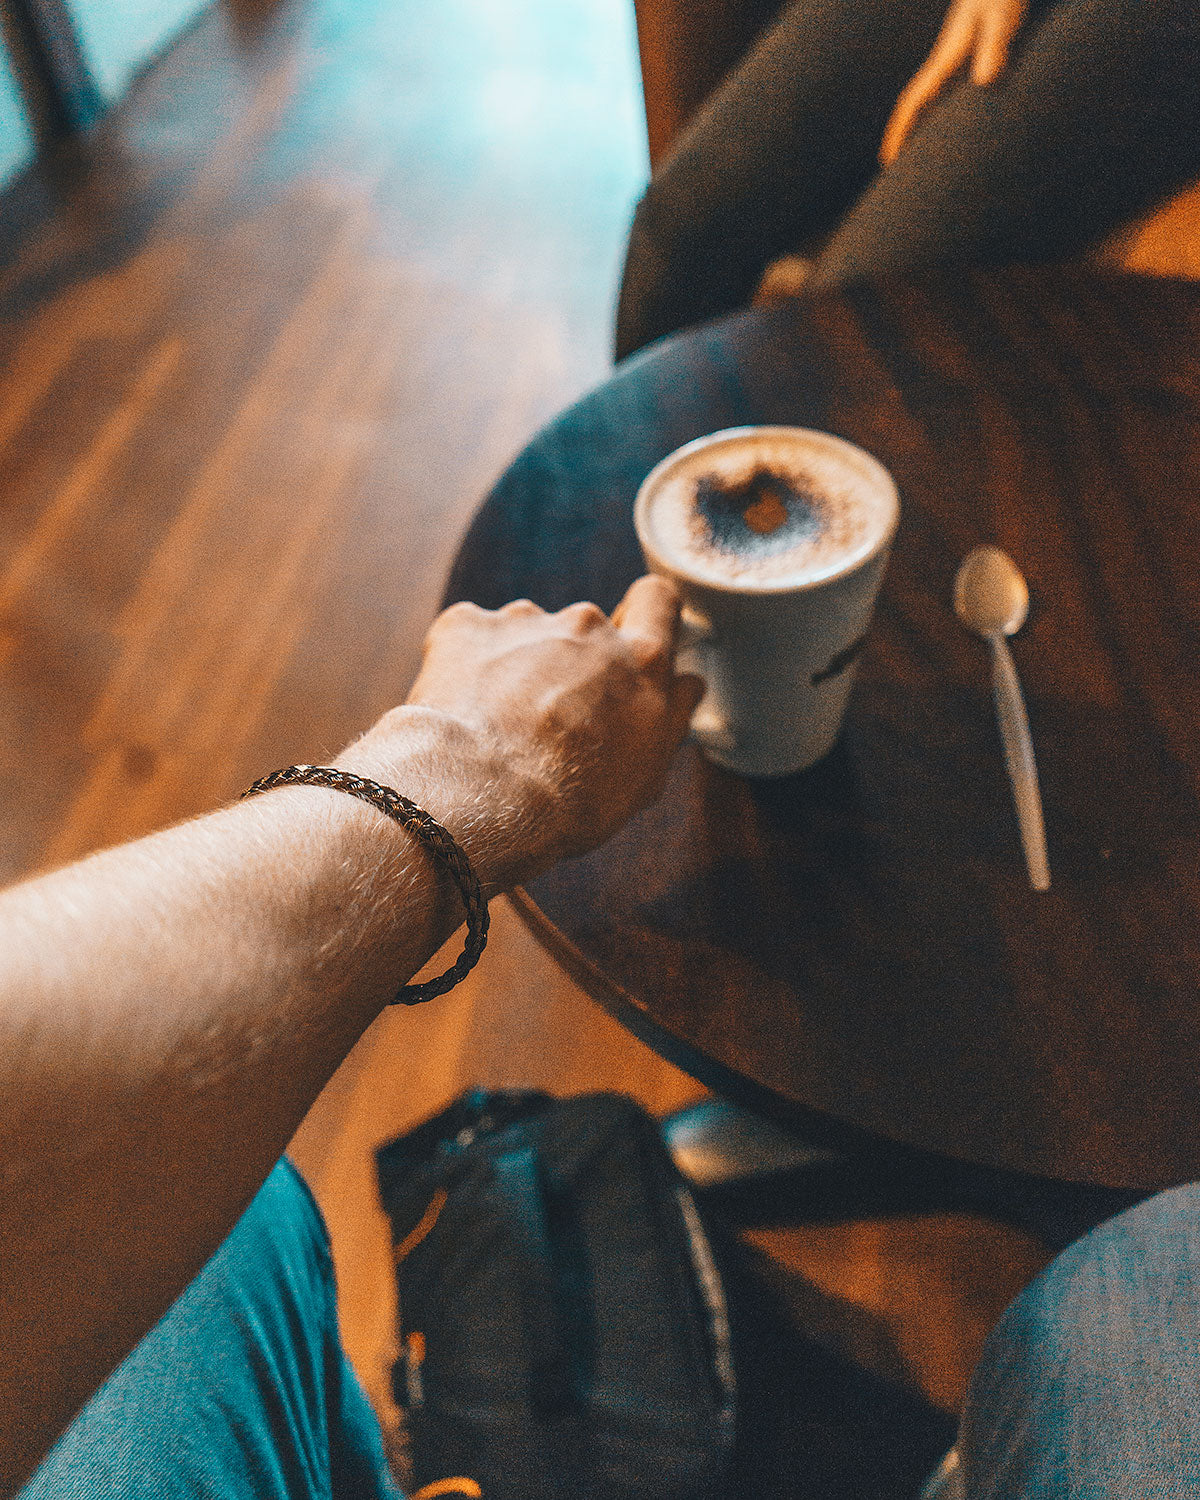 vario woven metal bracelet and coffee